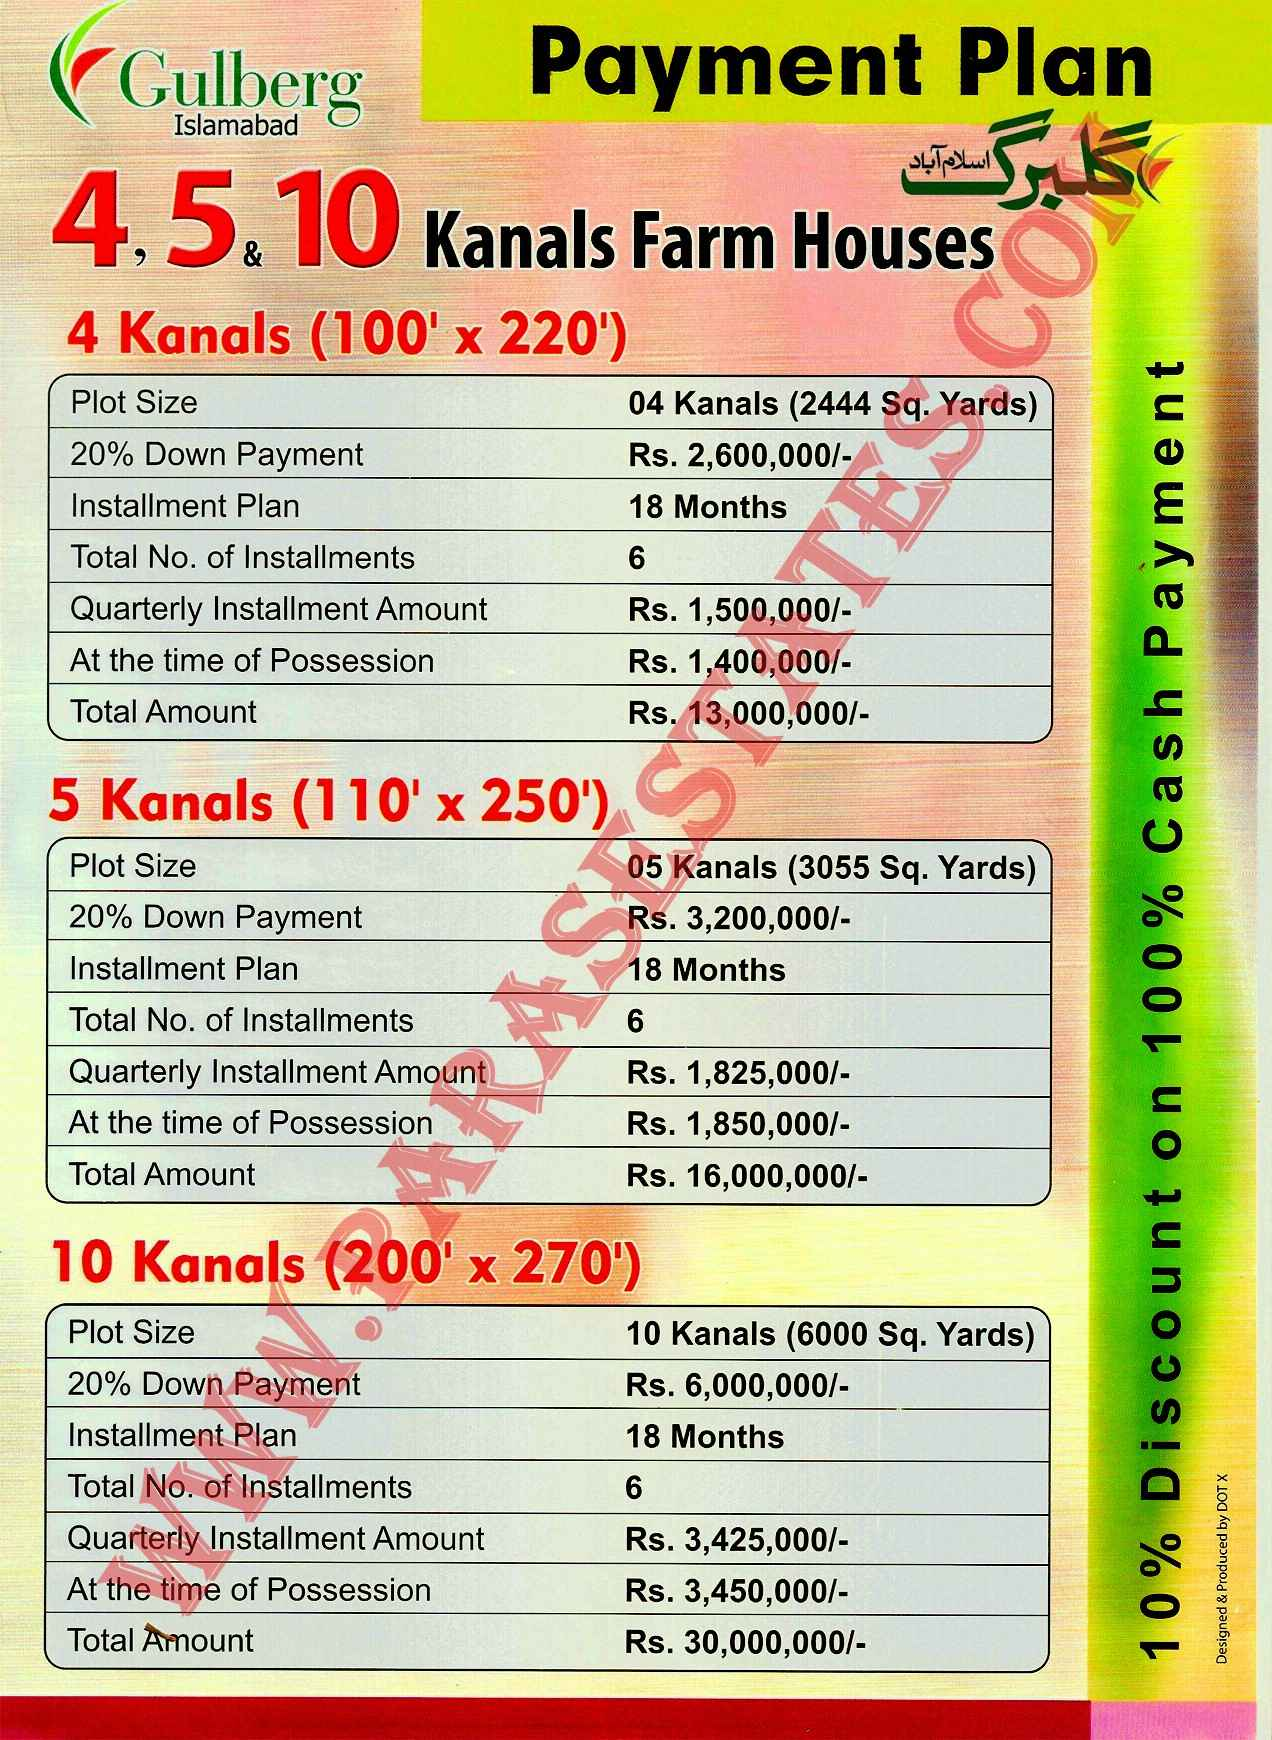 Gulberg Farm House Plots Payment Plan